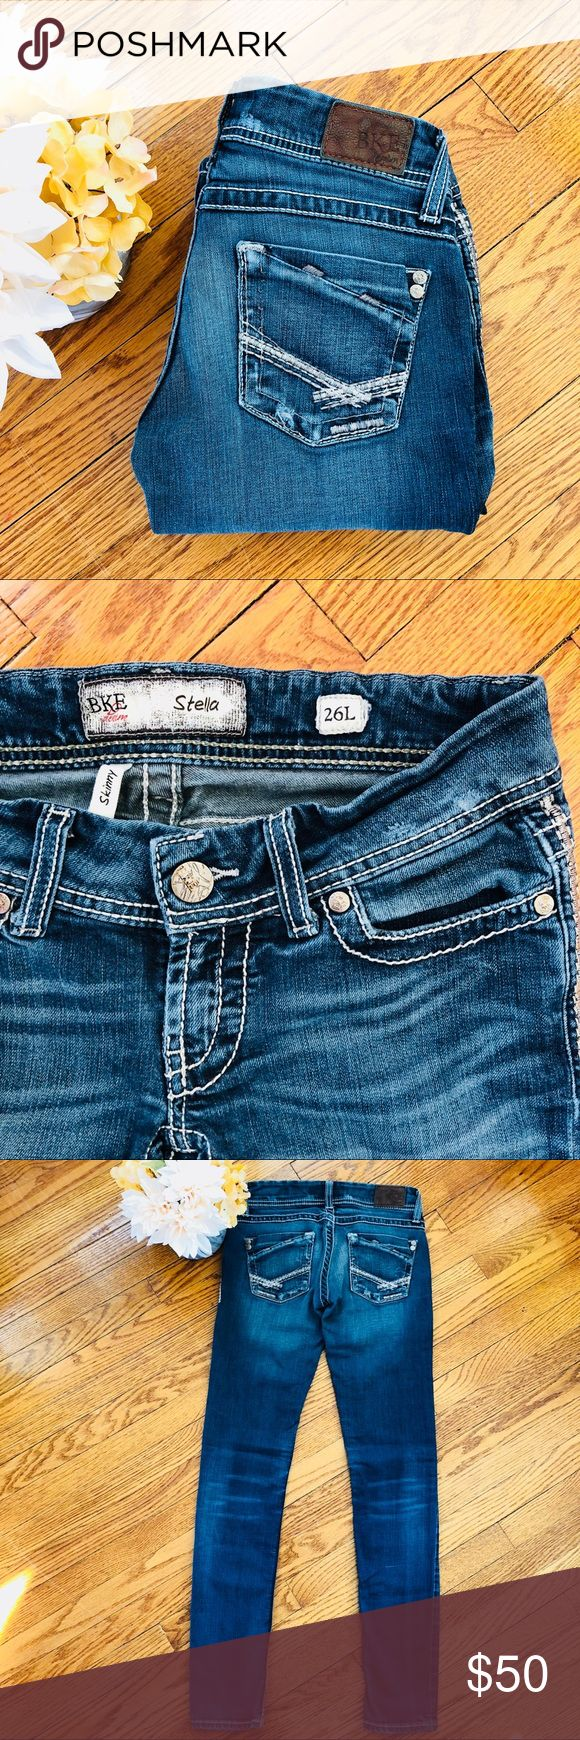 """BKE Stella 26x33.5 Skinny Long BKE Stella Skinny Jeans Medium Wash  Contrast Silver Stitching  Thick Stitching on back pockets  Waist 15"""" Front Rise 7"""" Back Rise 10"""" Some of the darker stitching on back pocket has come loose, but has no structural effect.  Great condition BKE Jeans Skinny"""